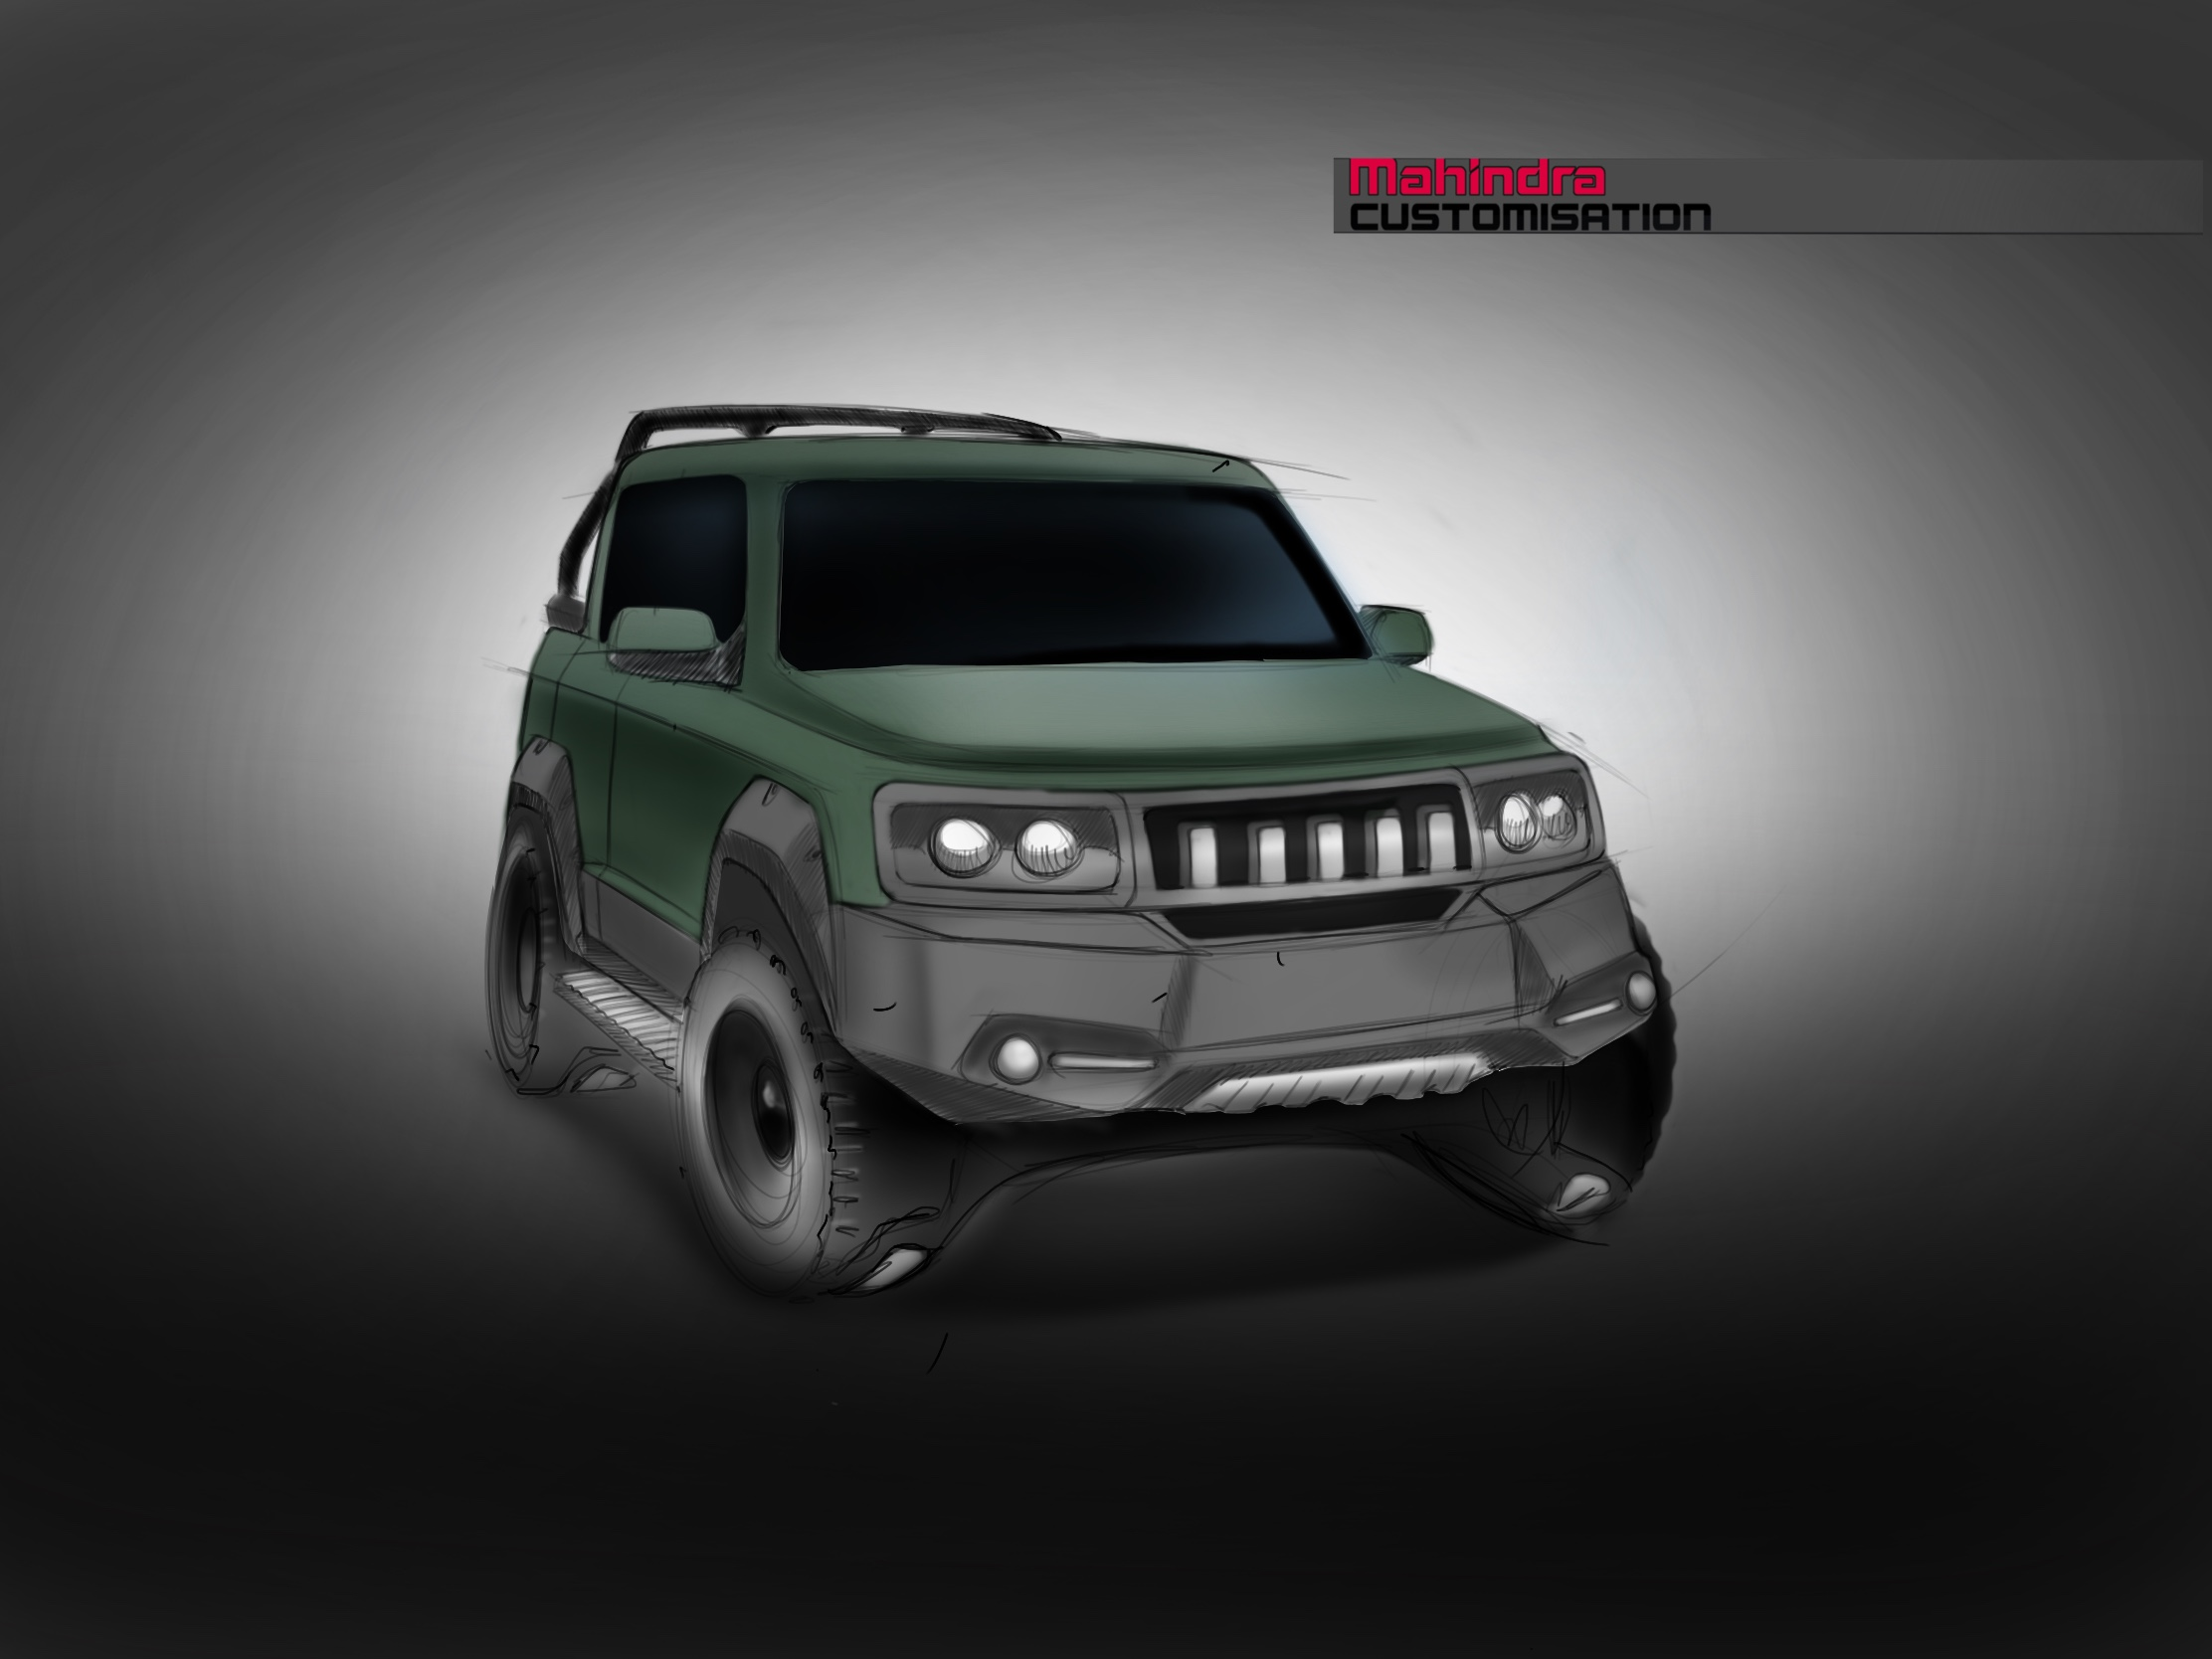 Mahindra Customisation Sketch